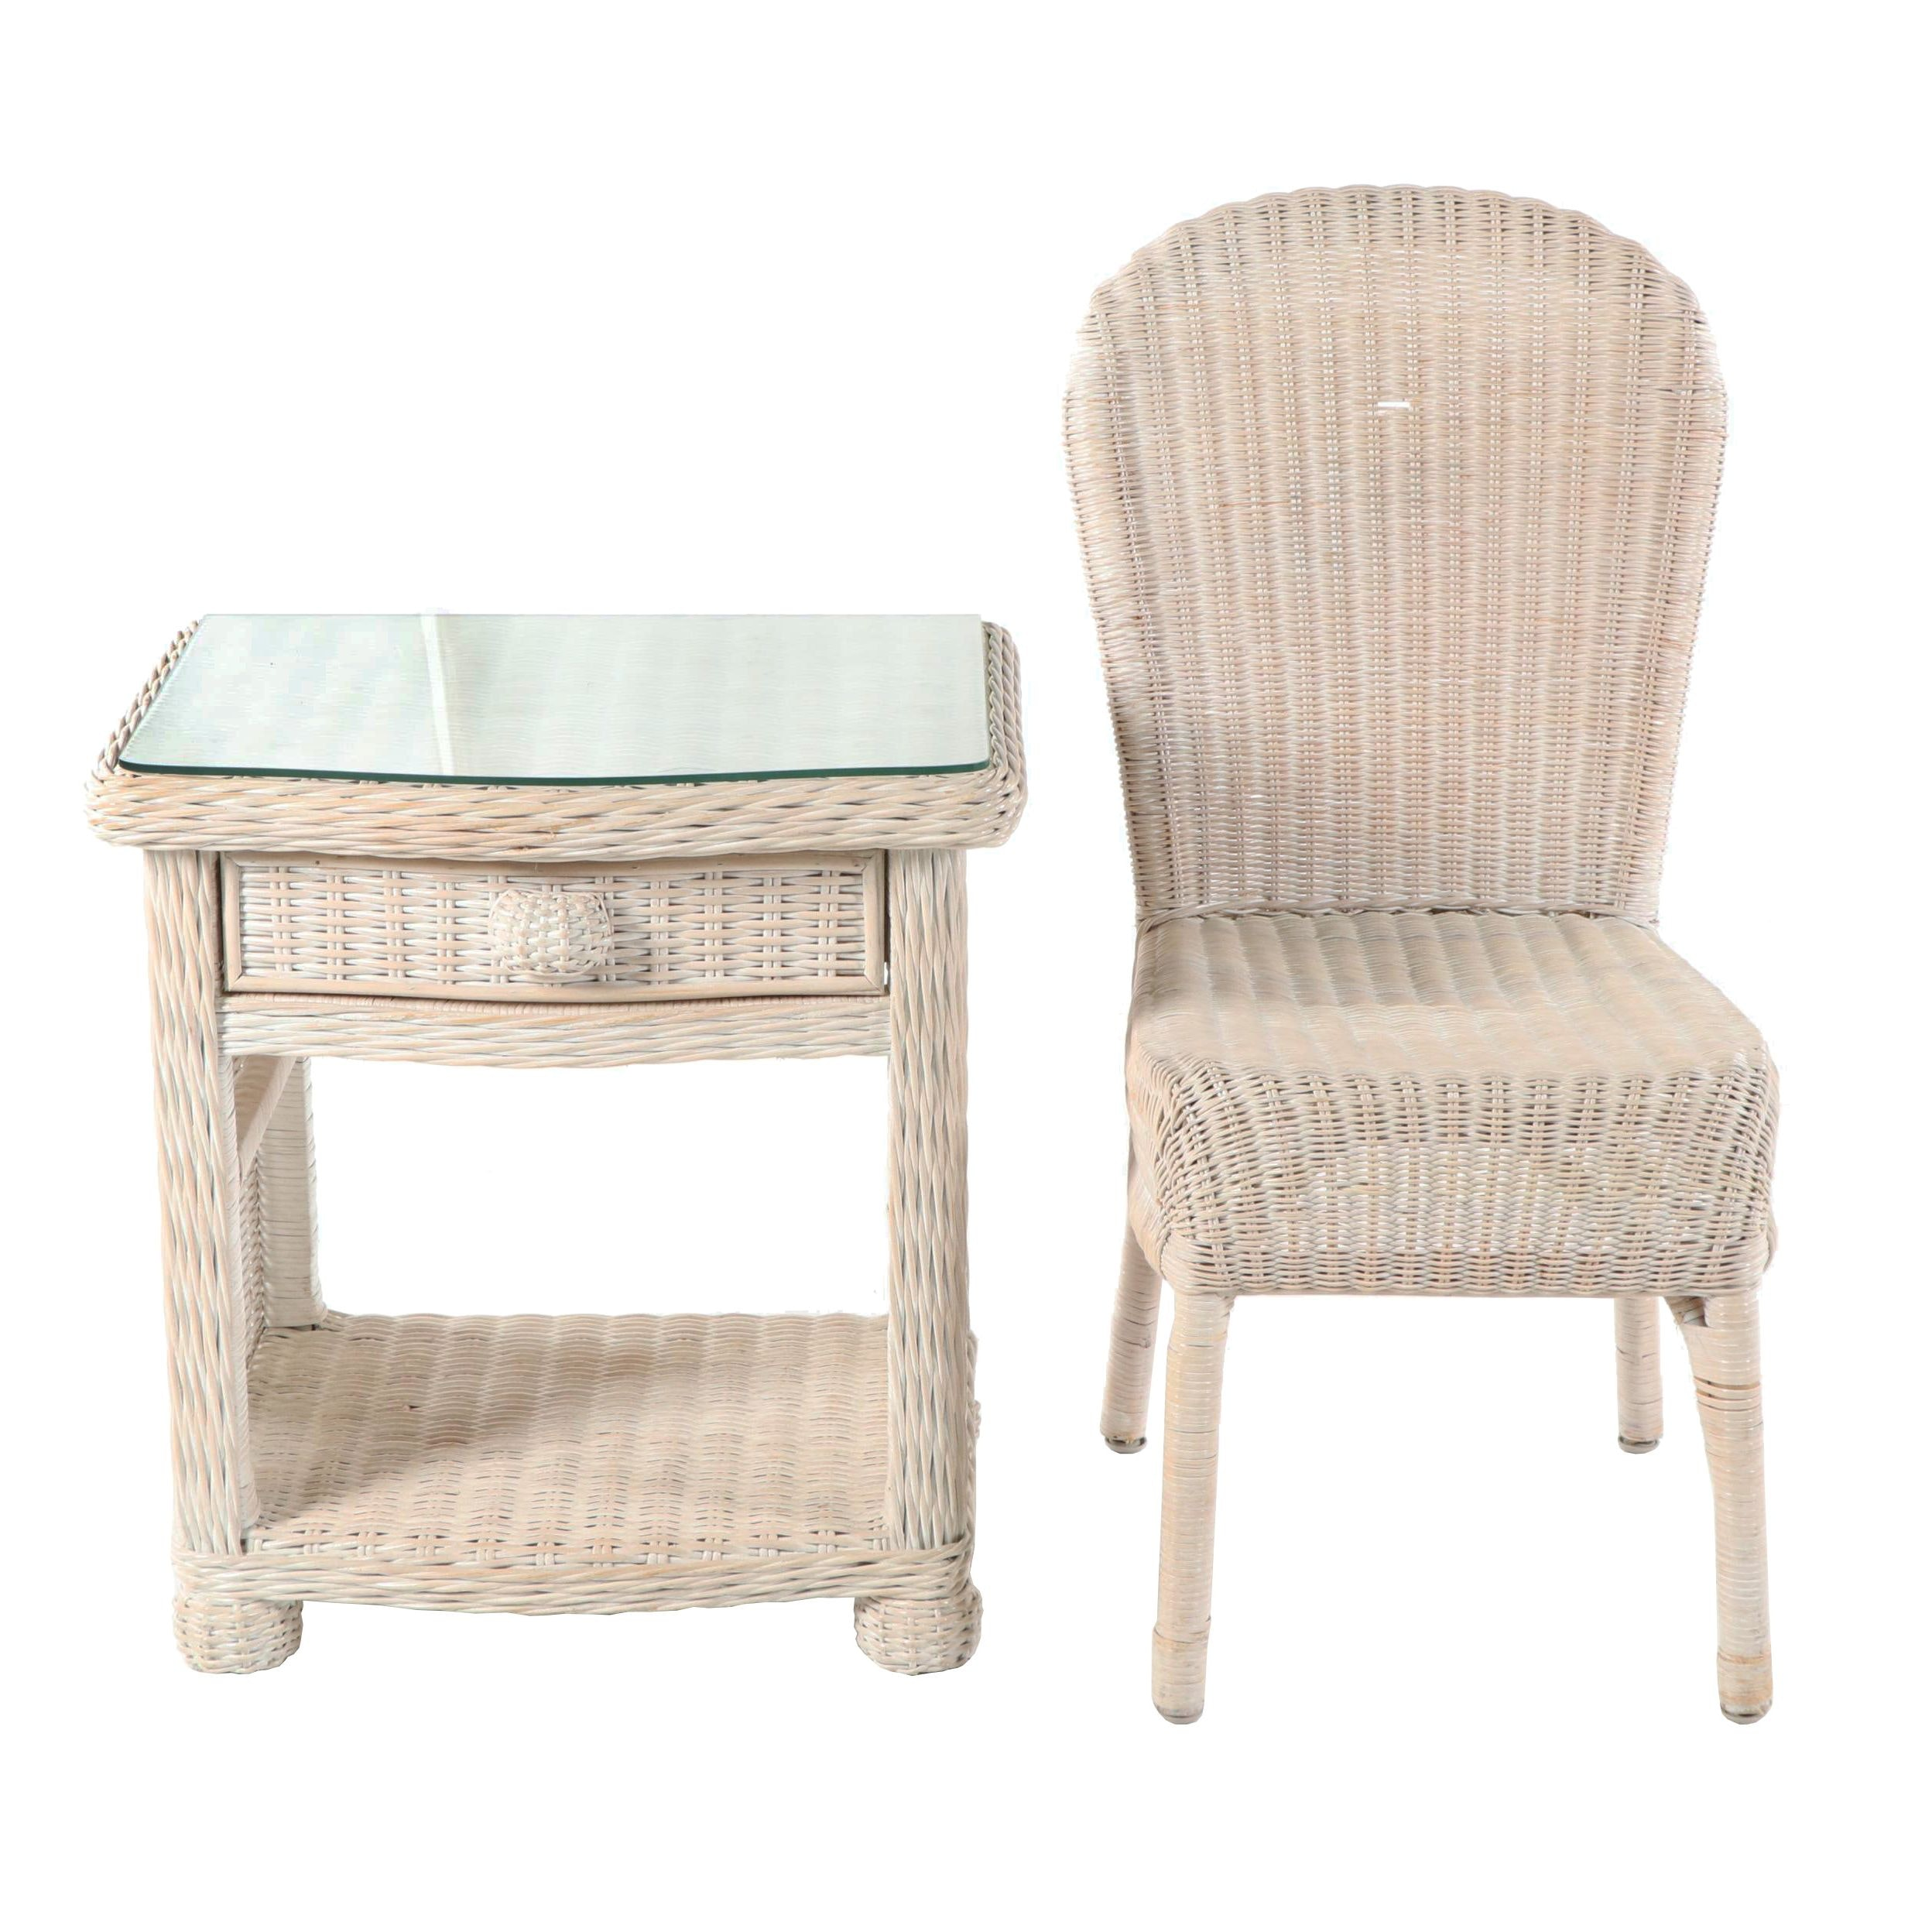 Wicker Nightstand and Side Chair, Late 20th Century